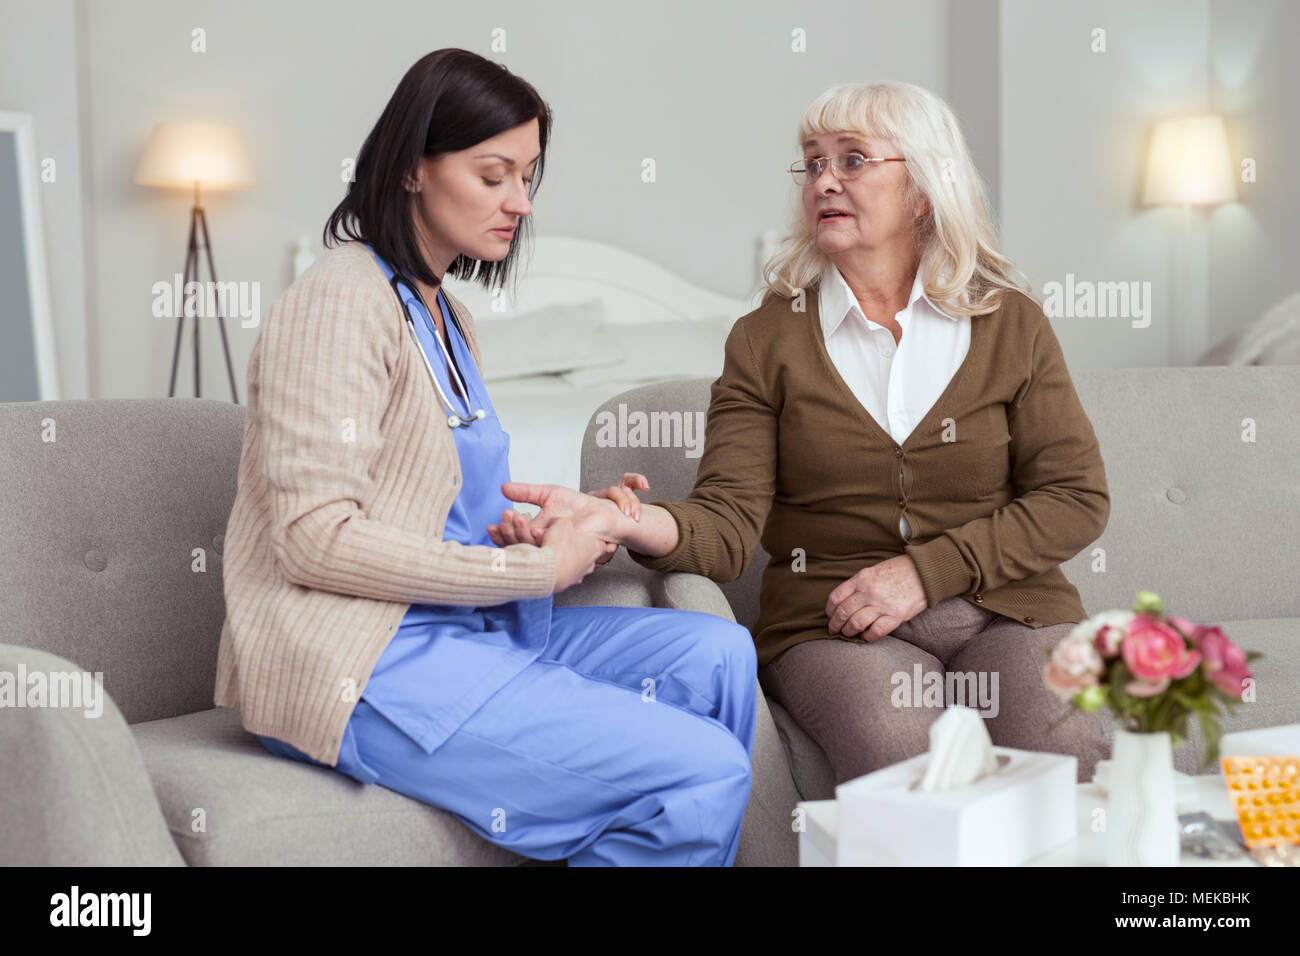 Focused female caregiver monitoring pulse - Stock Image